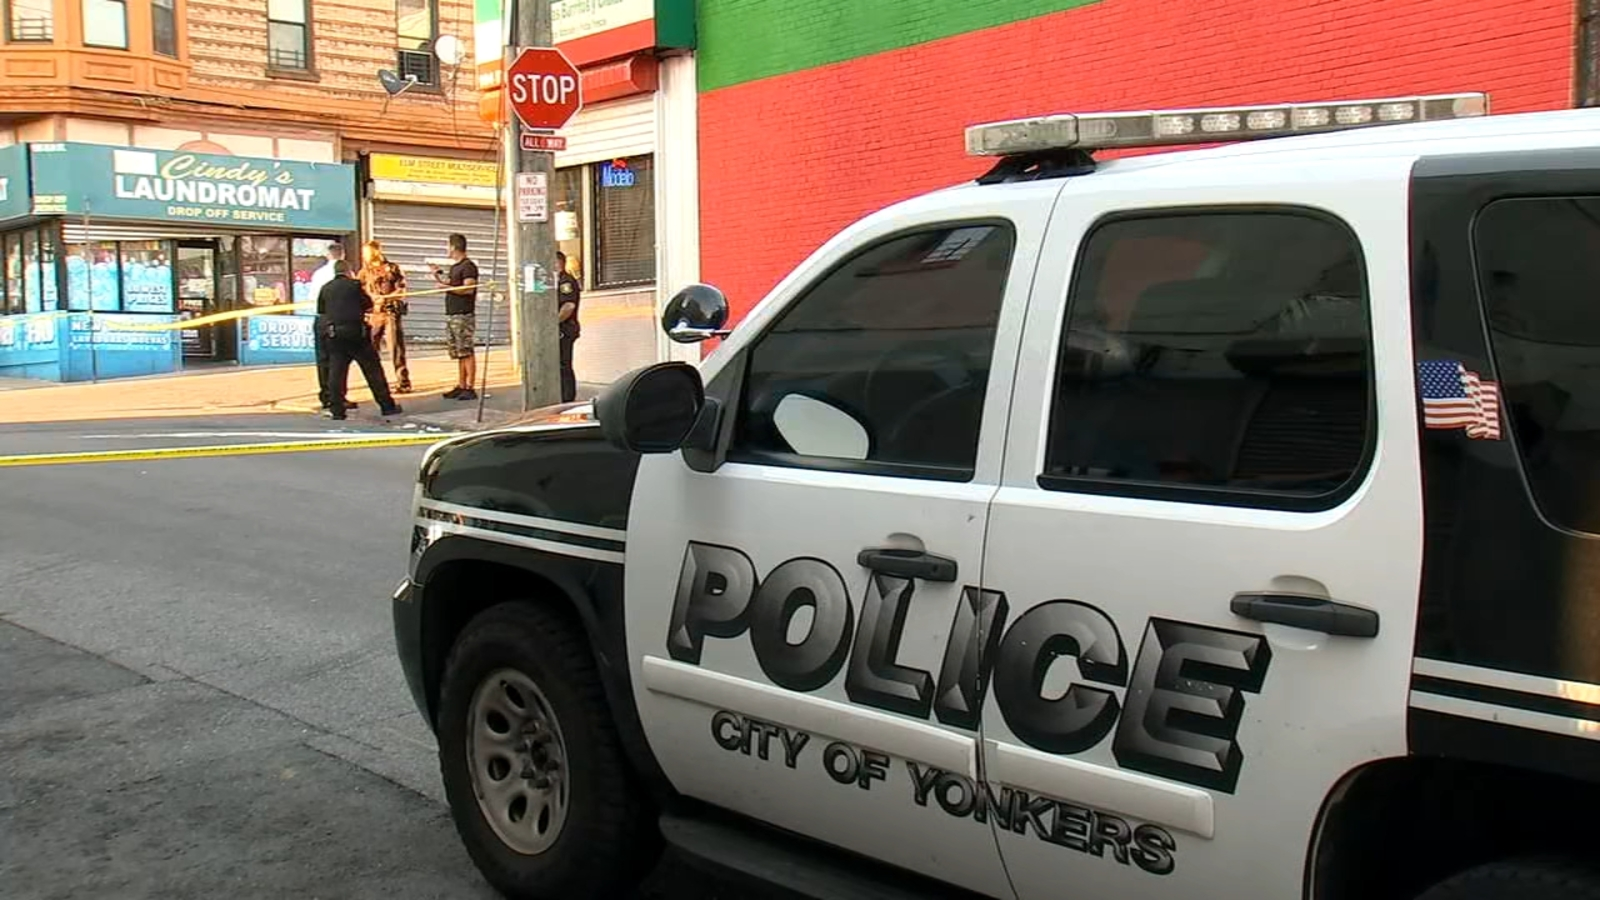 4 injured in drive-by shooting in Yonkers